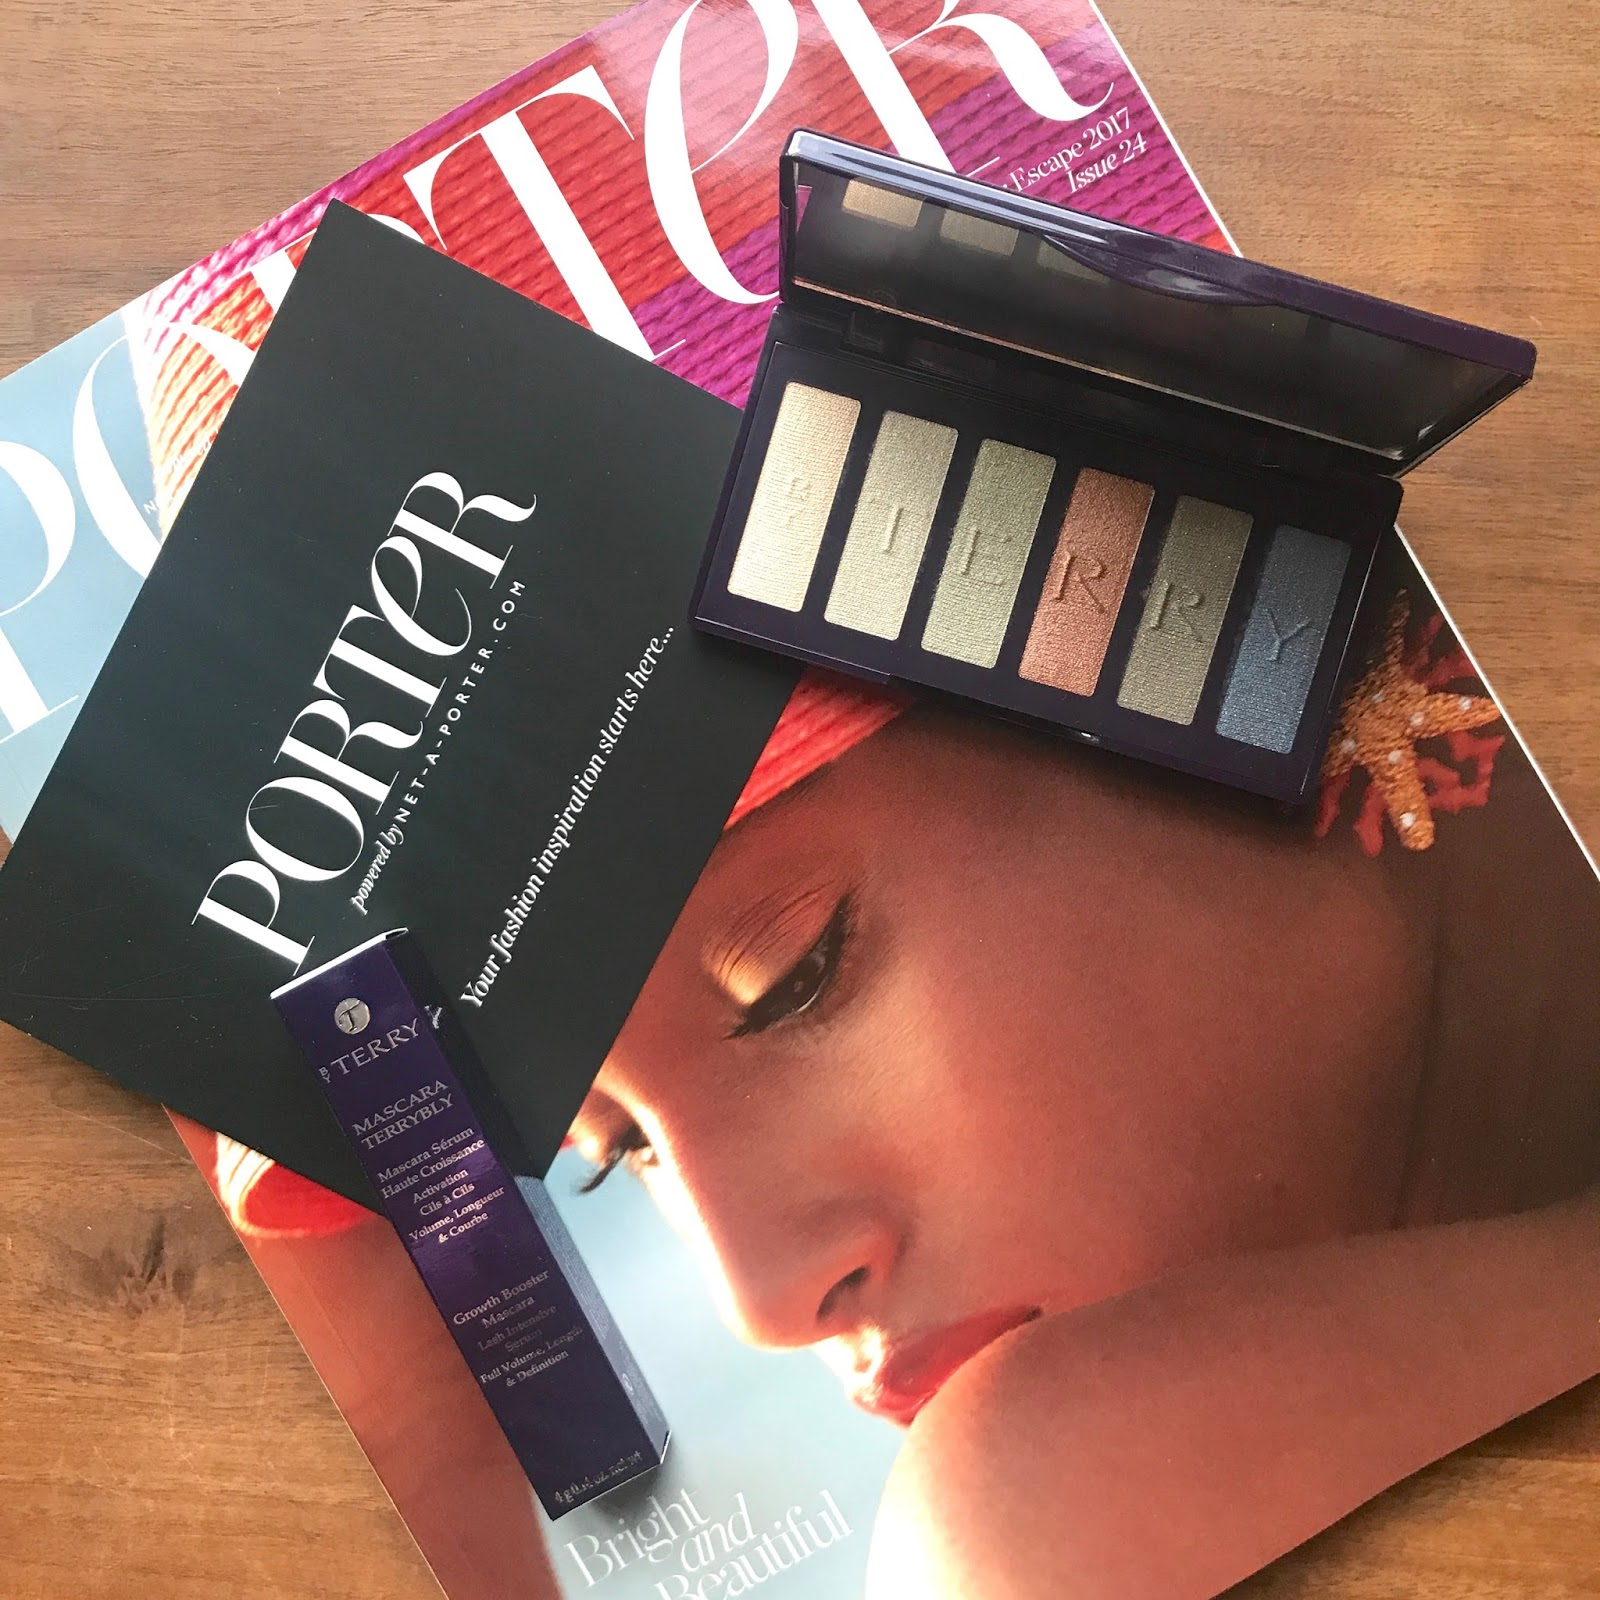 821f166f22e6fd Porter is a sumptuous glossy magazine from luxury e-commerce site Net-a- Porter which